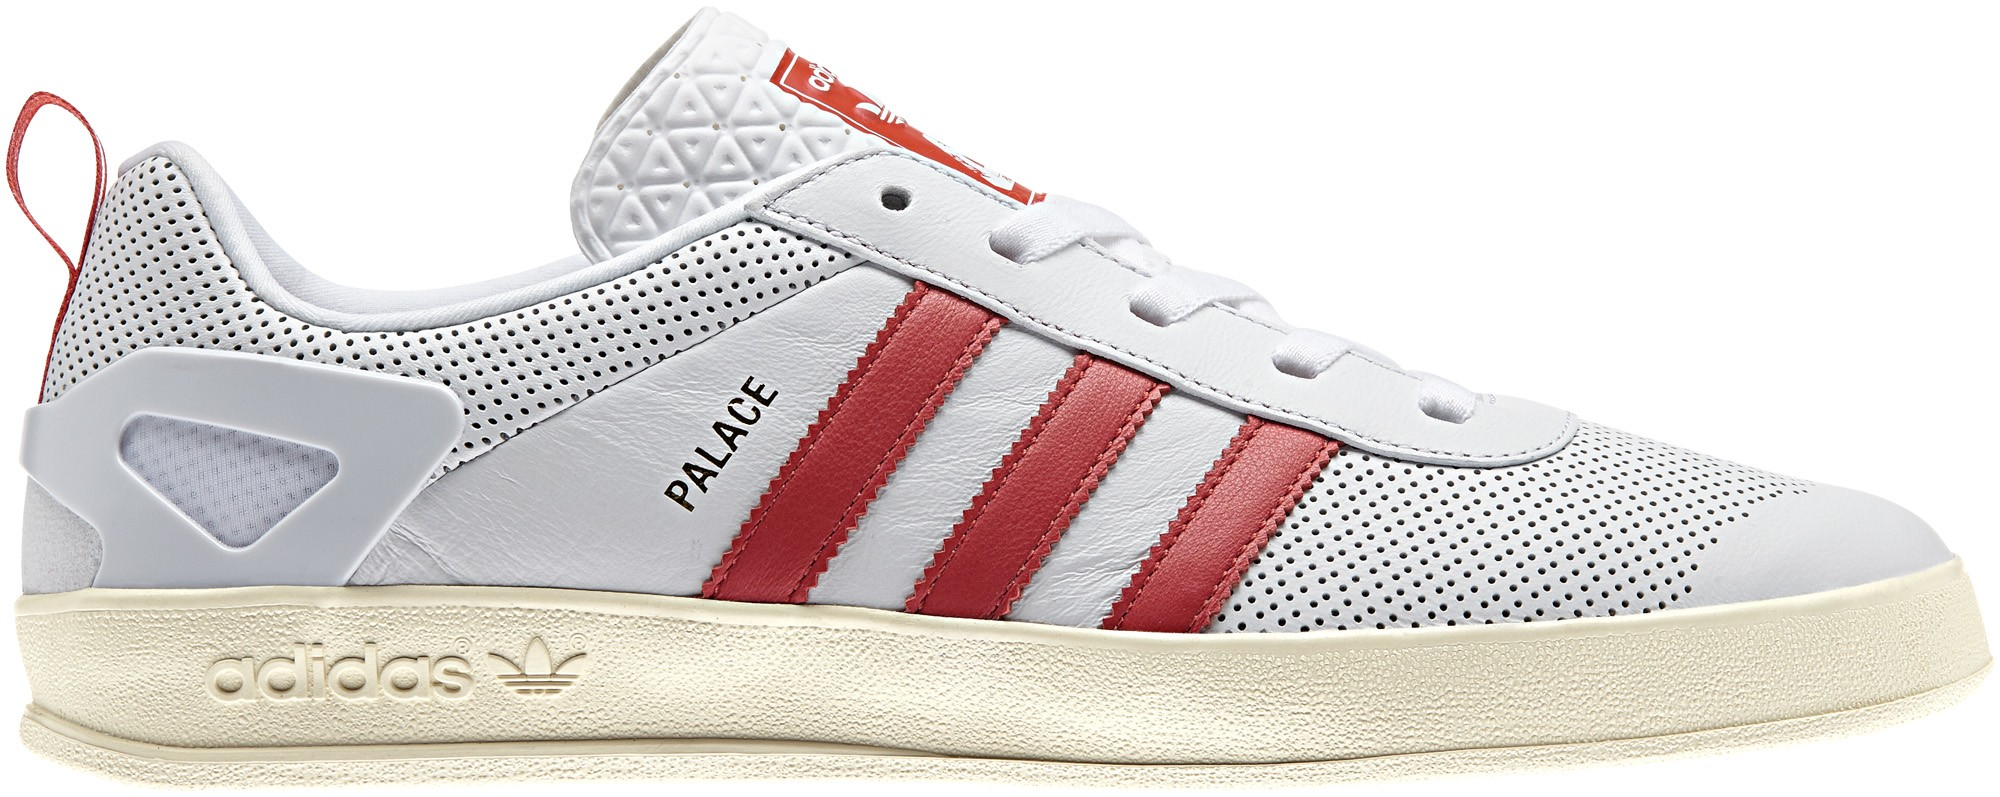 Palace Pro White Red Gold